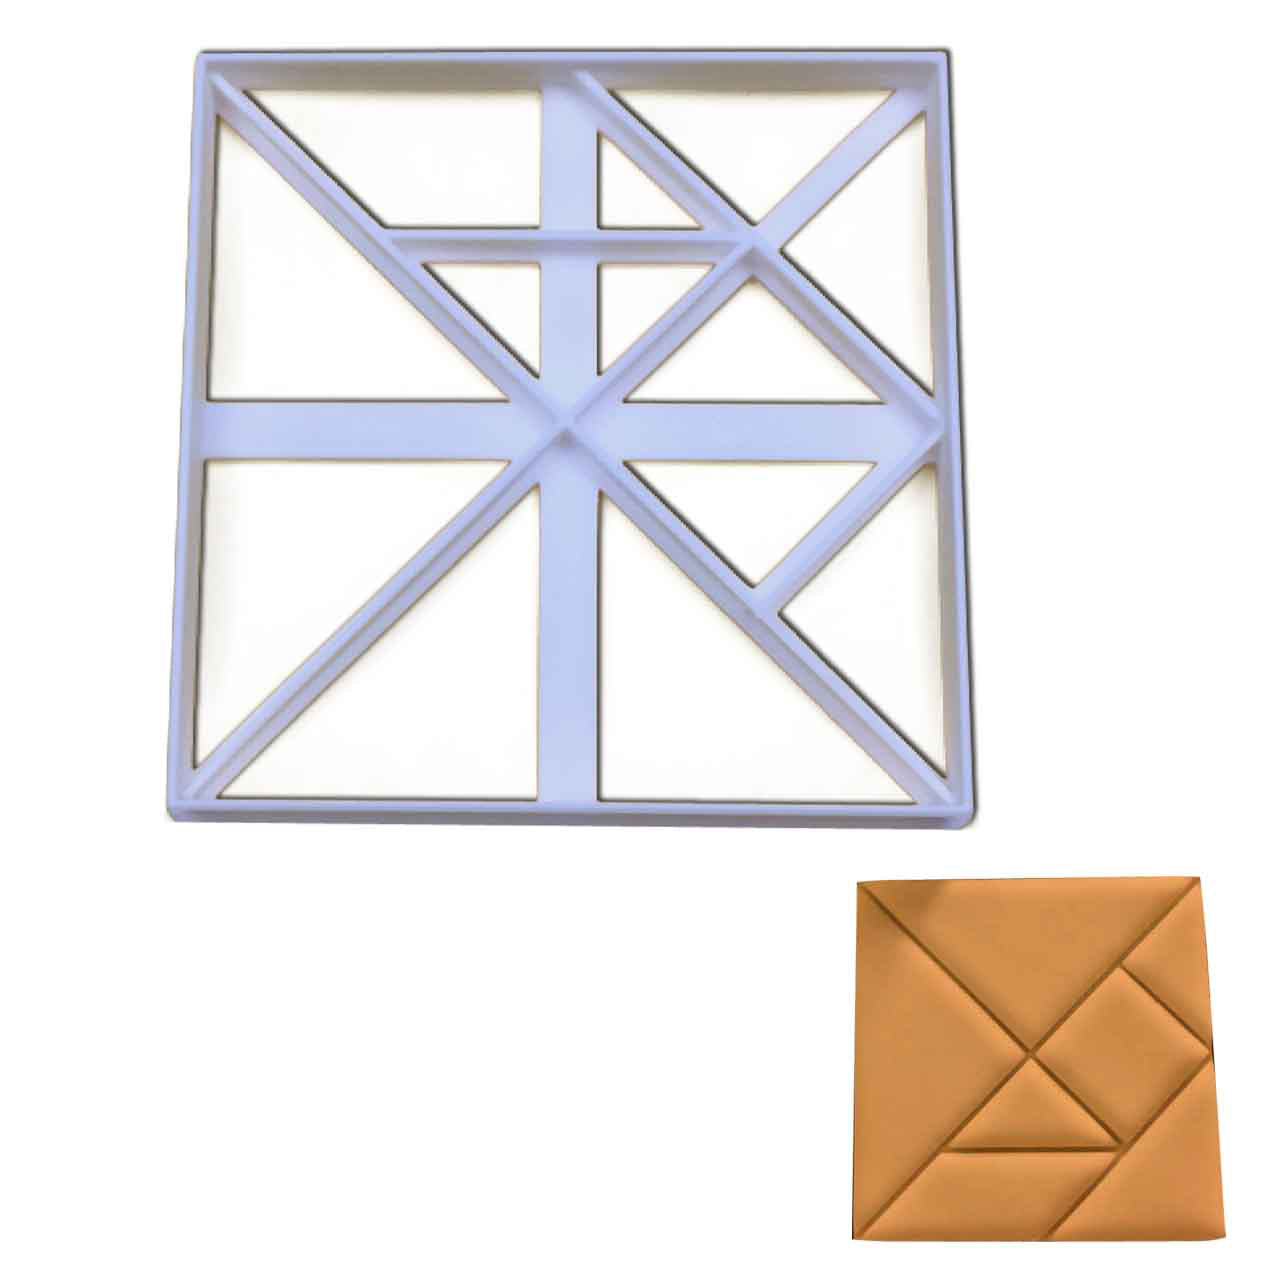 square tangram cookie cutter pressed on fondant